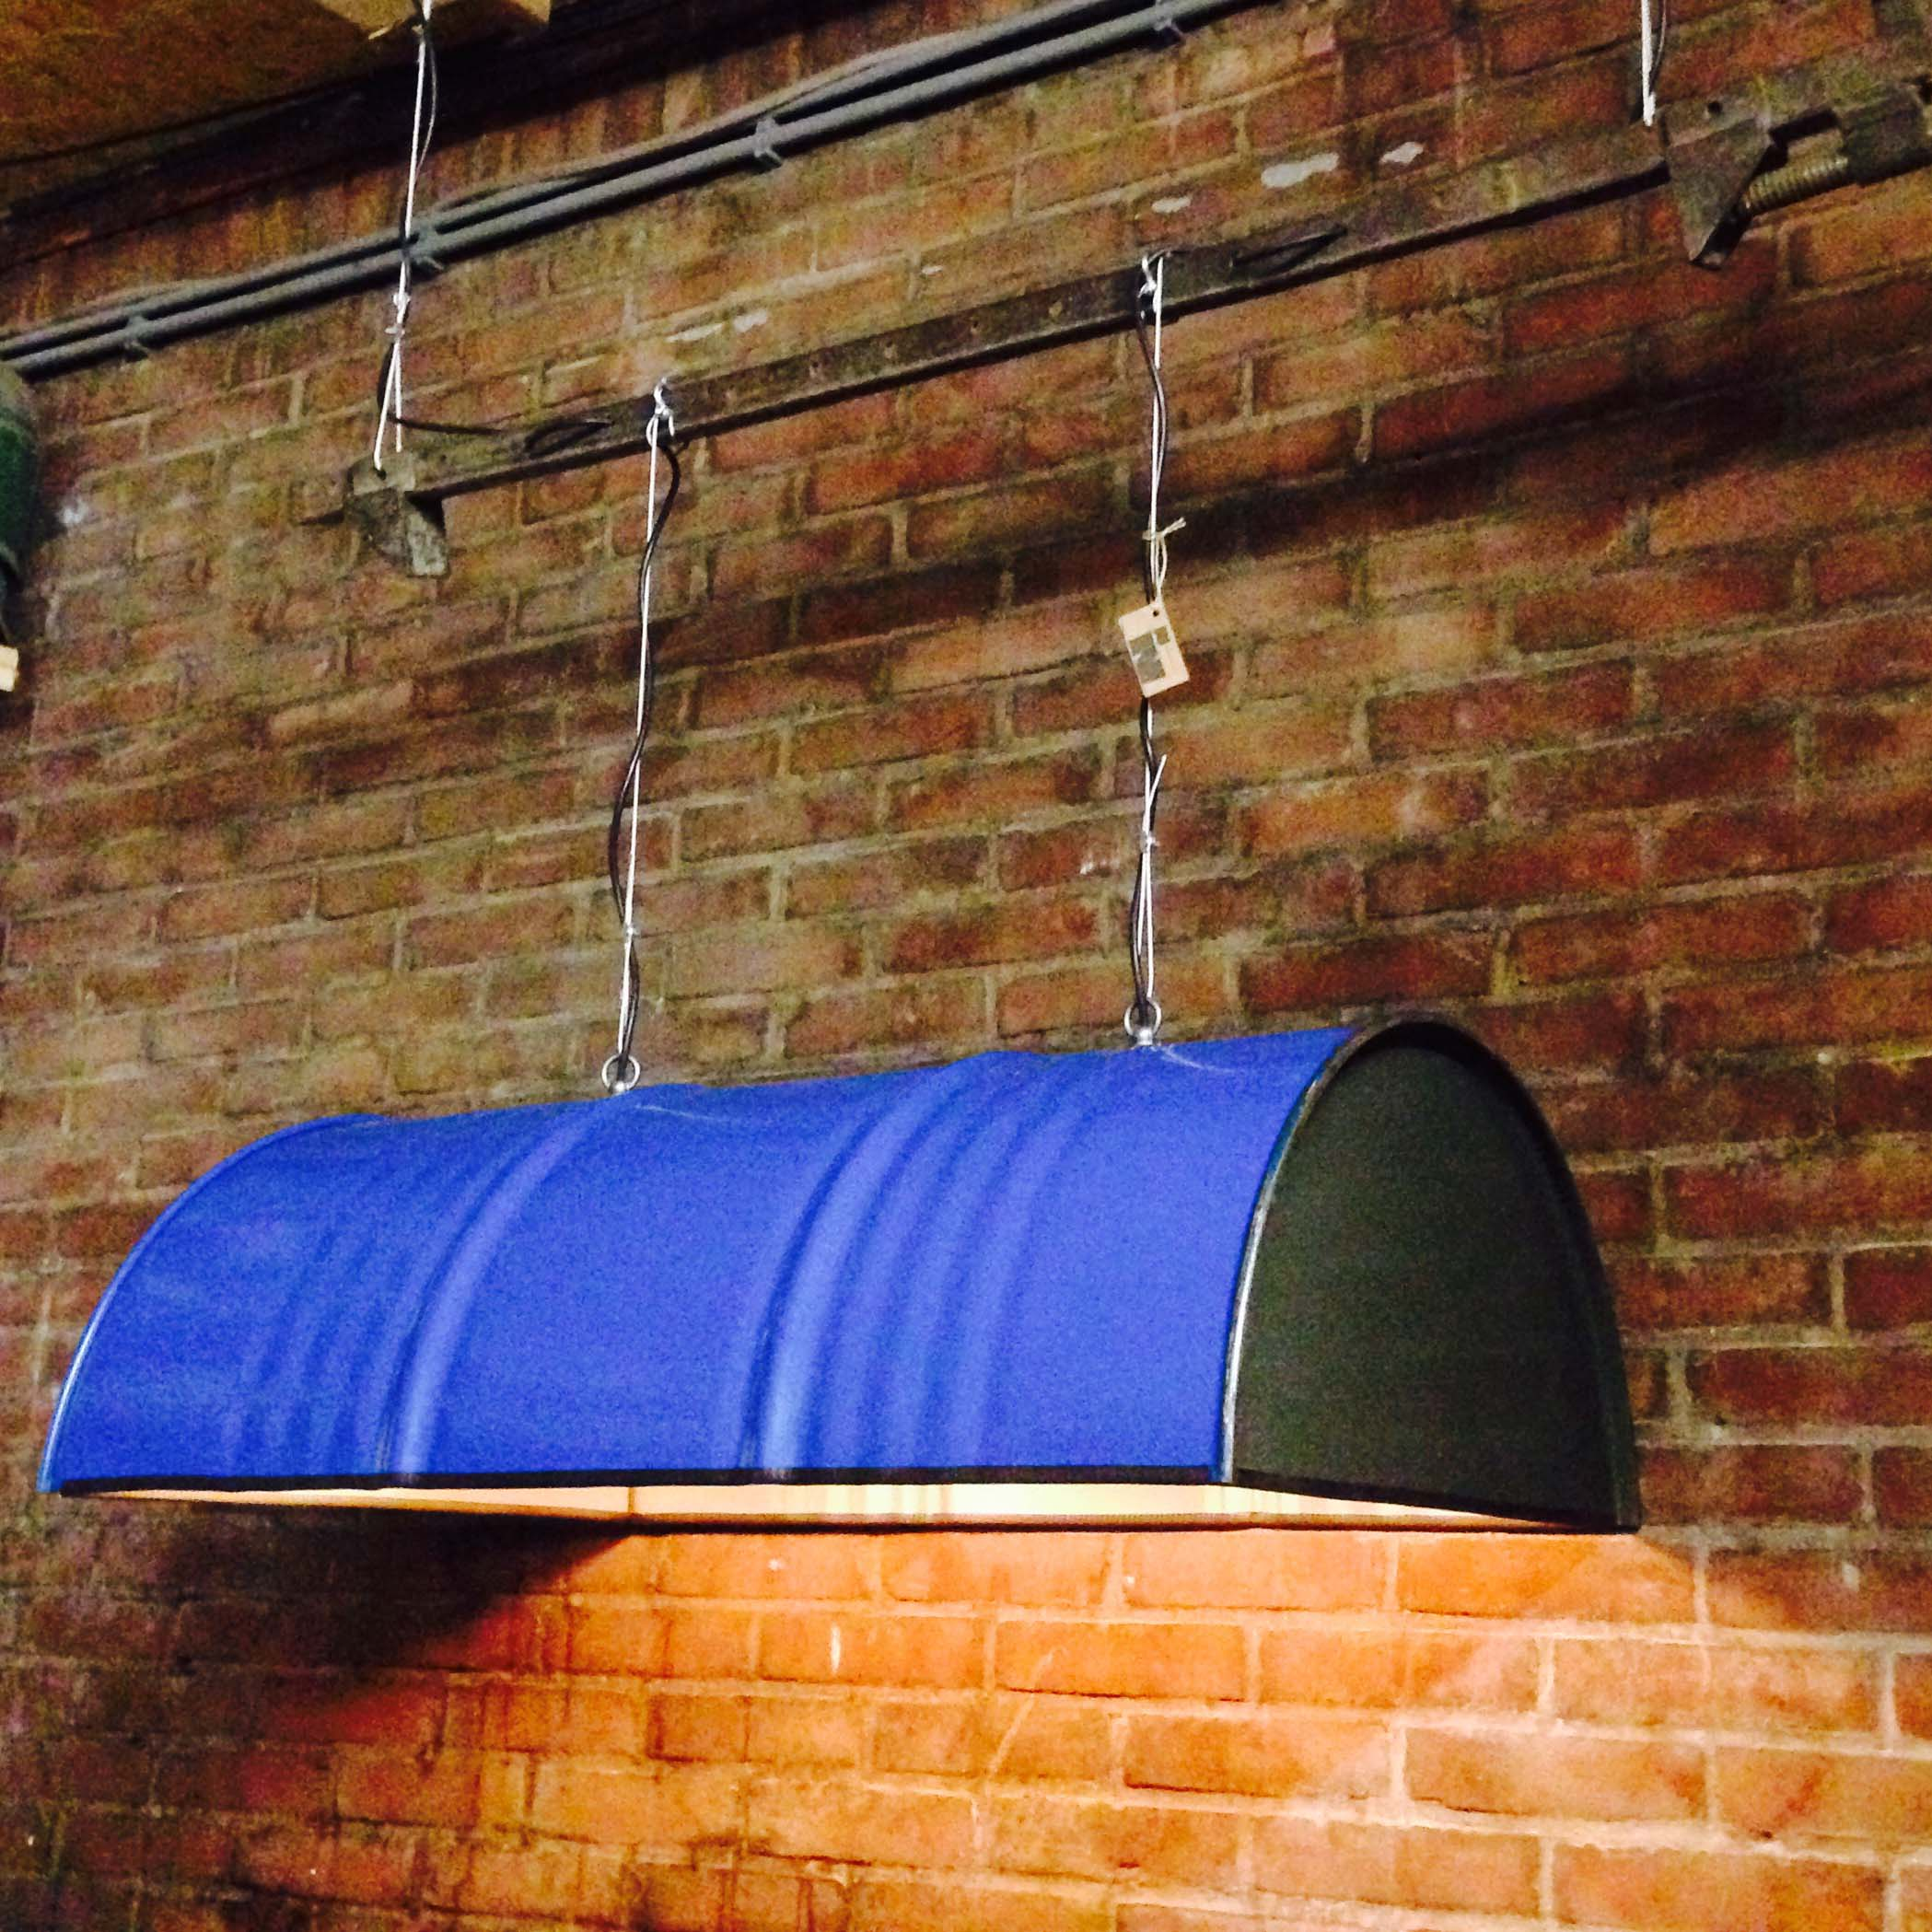 Industri le hanglamp 39 section light 39 indusigns - Industriele kantoorlamp ...